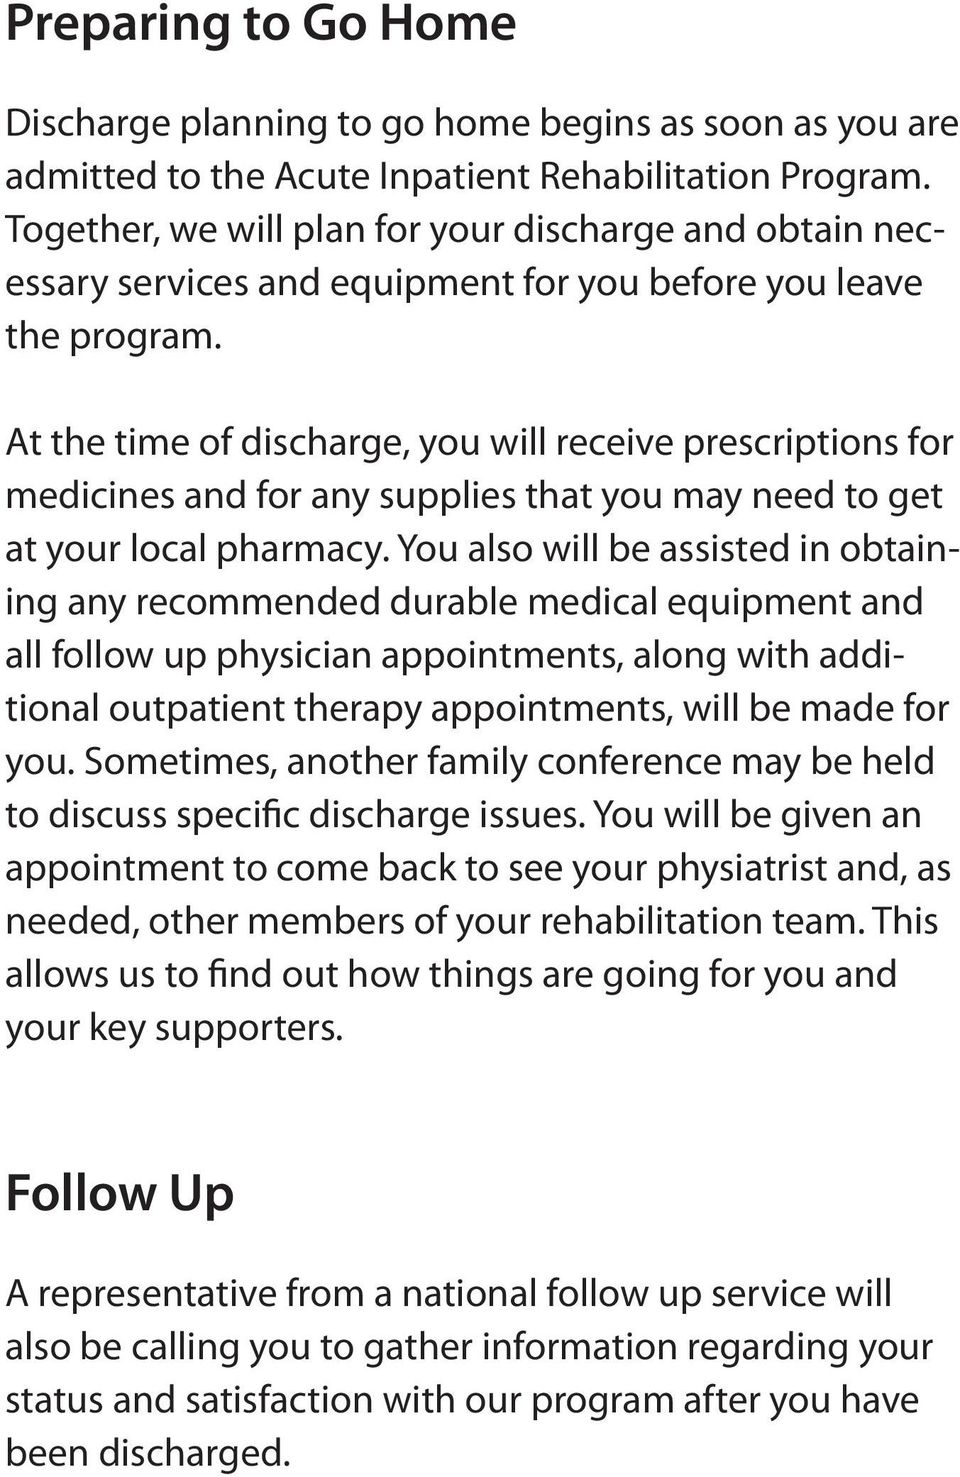 At the time of discharge, you will receive prescriptions for medicines and for any supplies that you may need to get at your local pharmacy.